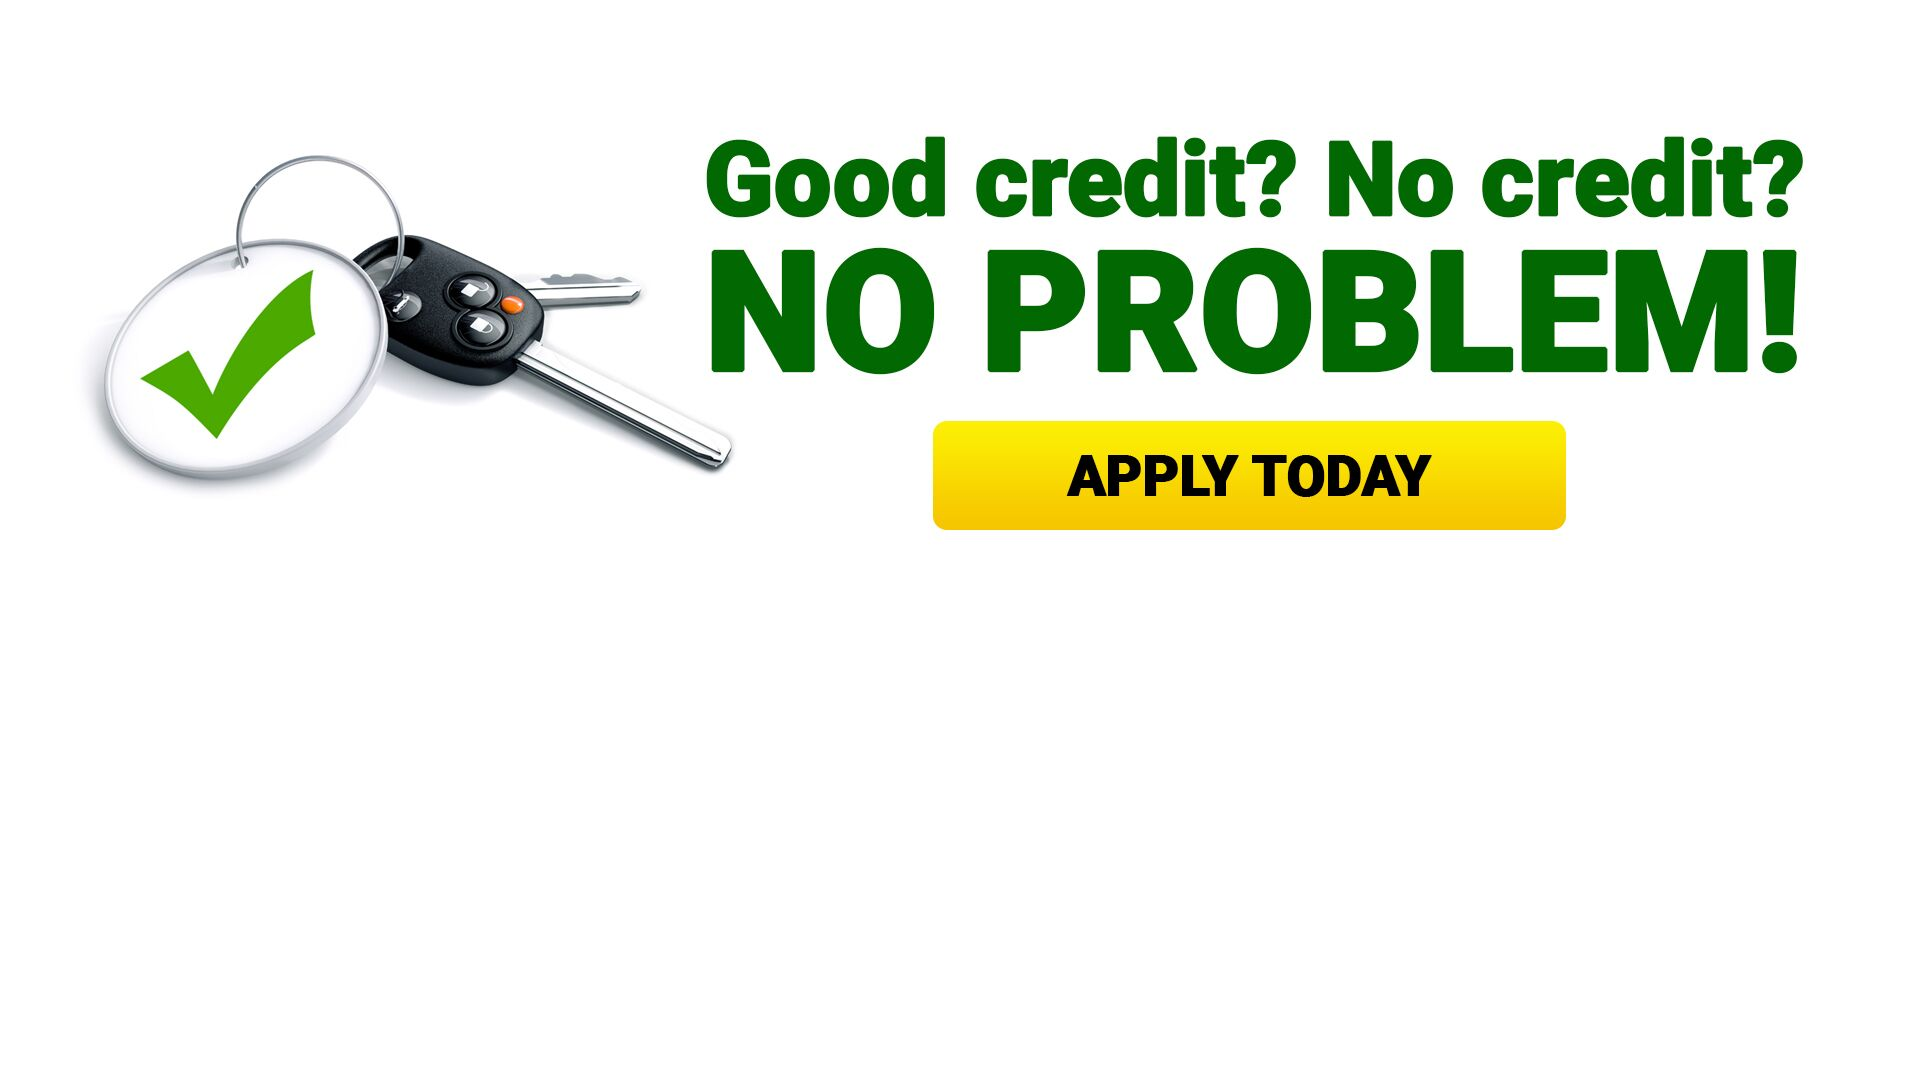 Good credit? No credit? No problem!